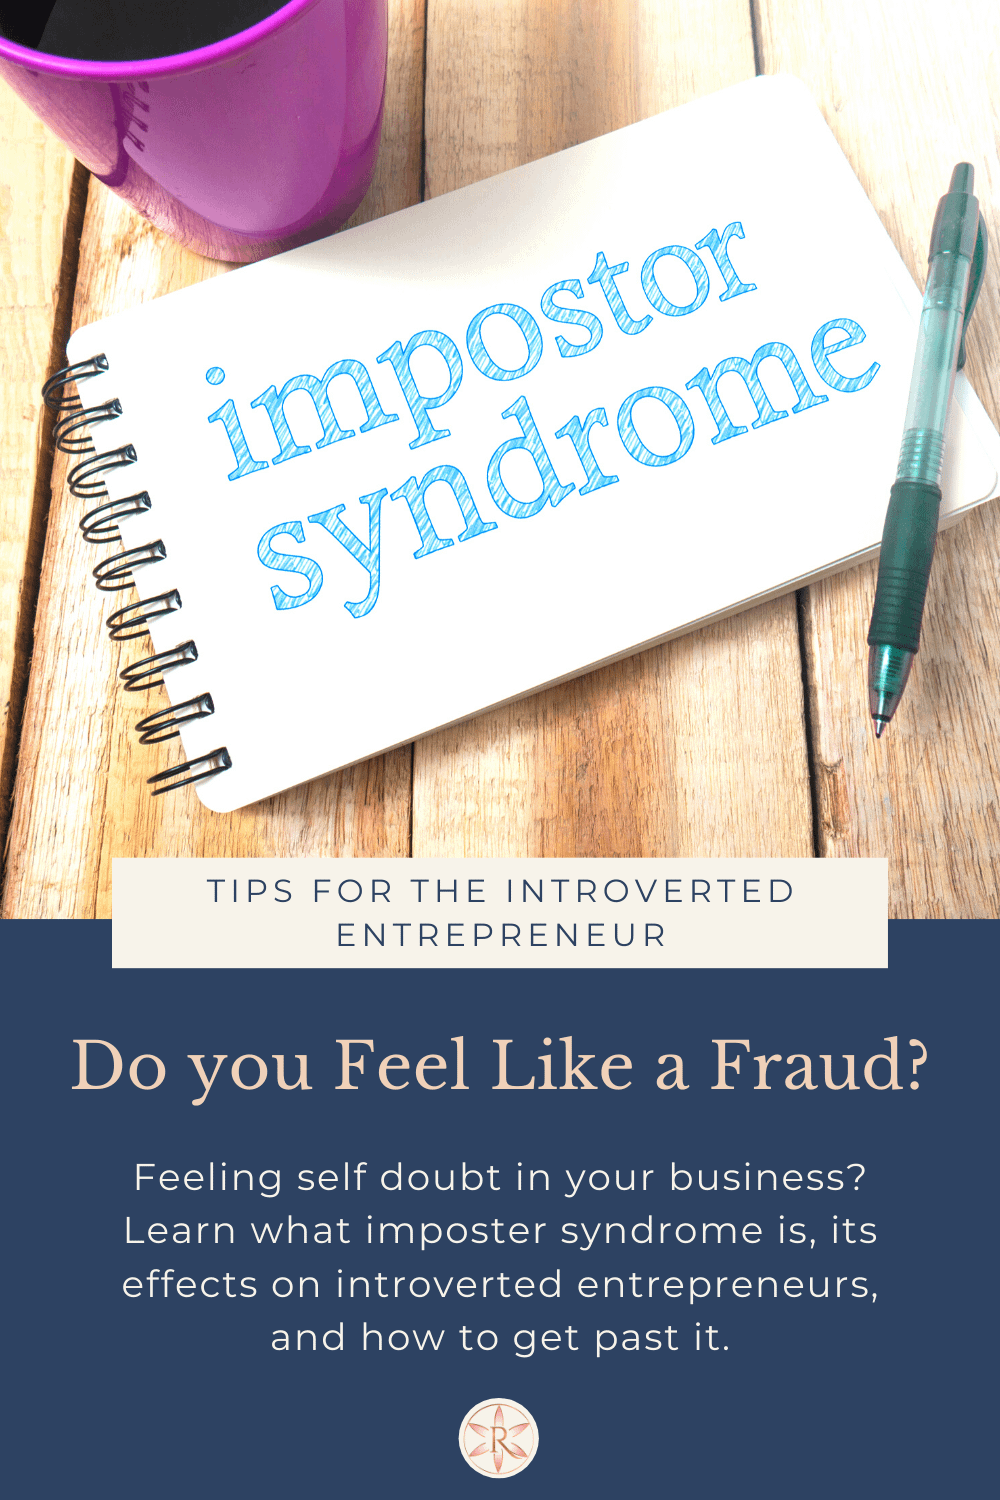 What is Imposter Syndrome Introverted Entrepenuers